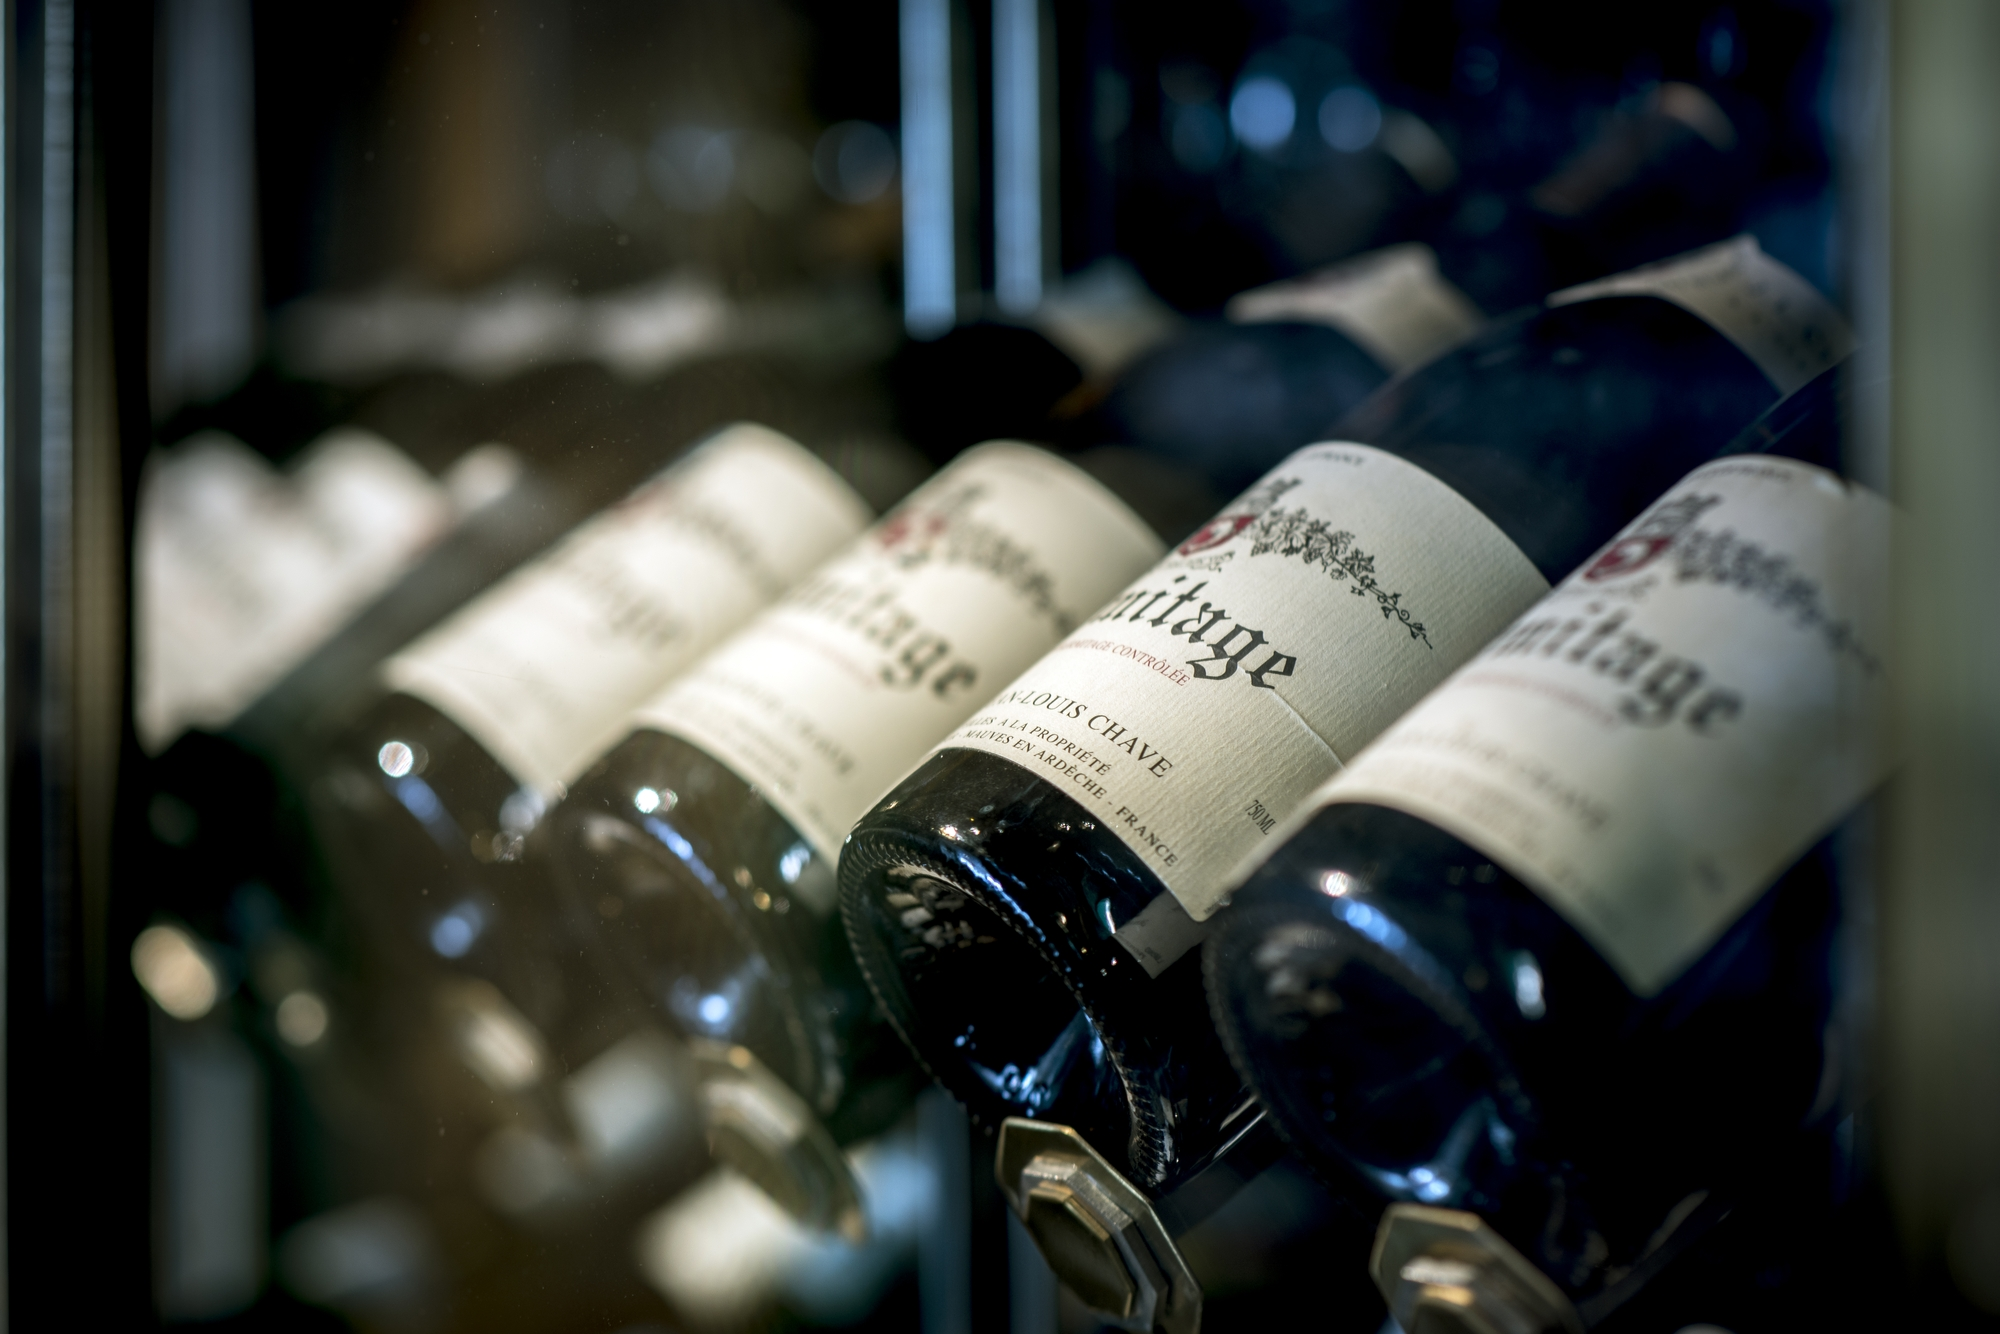 The new menu will feature a vastly extended wine list, offering precisely 525 varieties of both New and Old World wines, available in its entirety by the glass